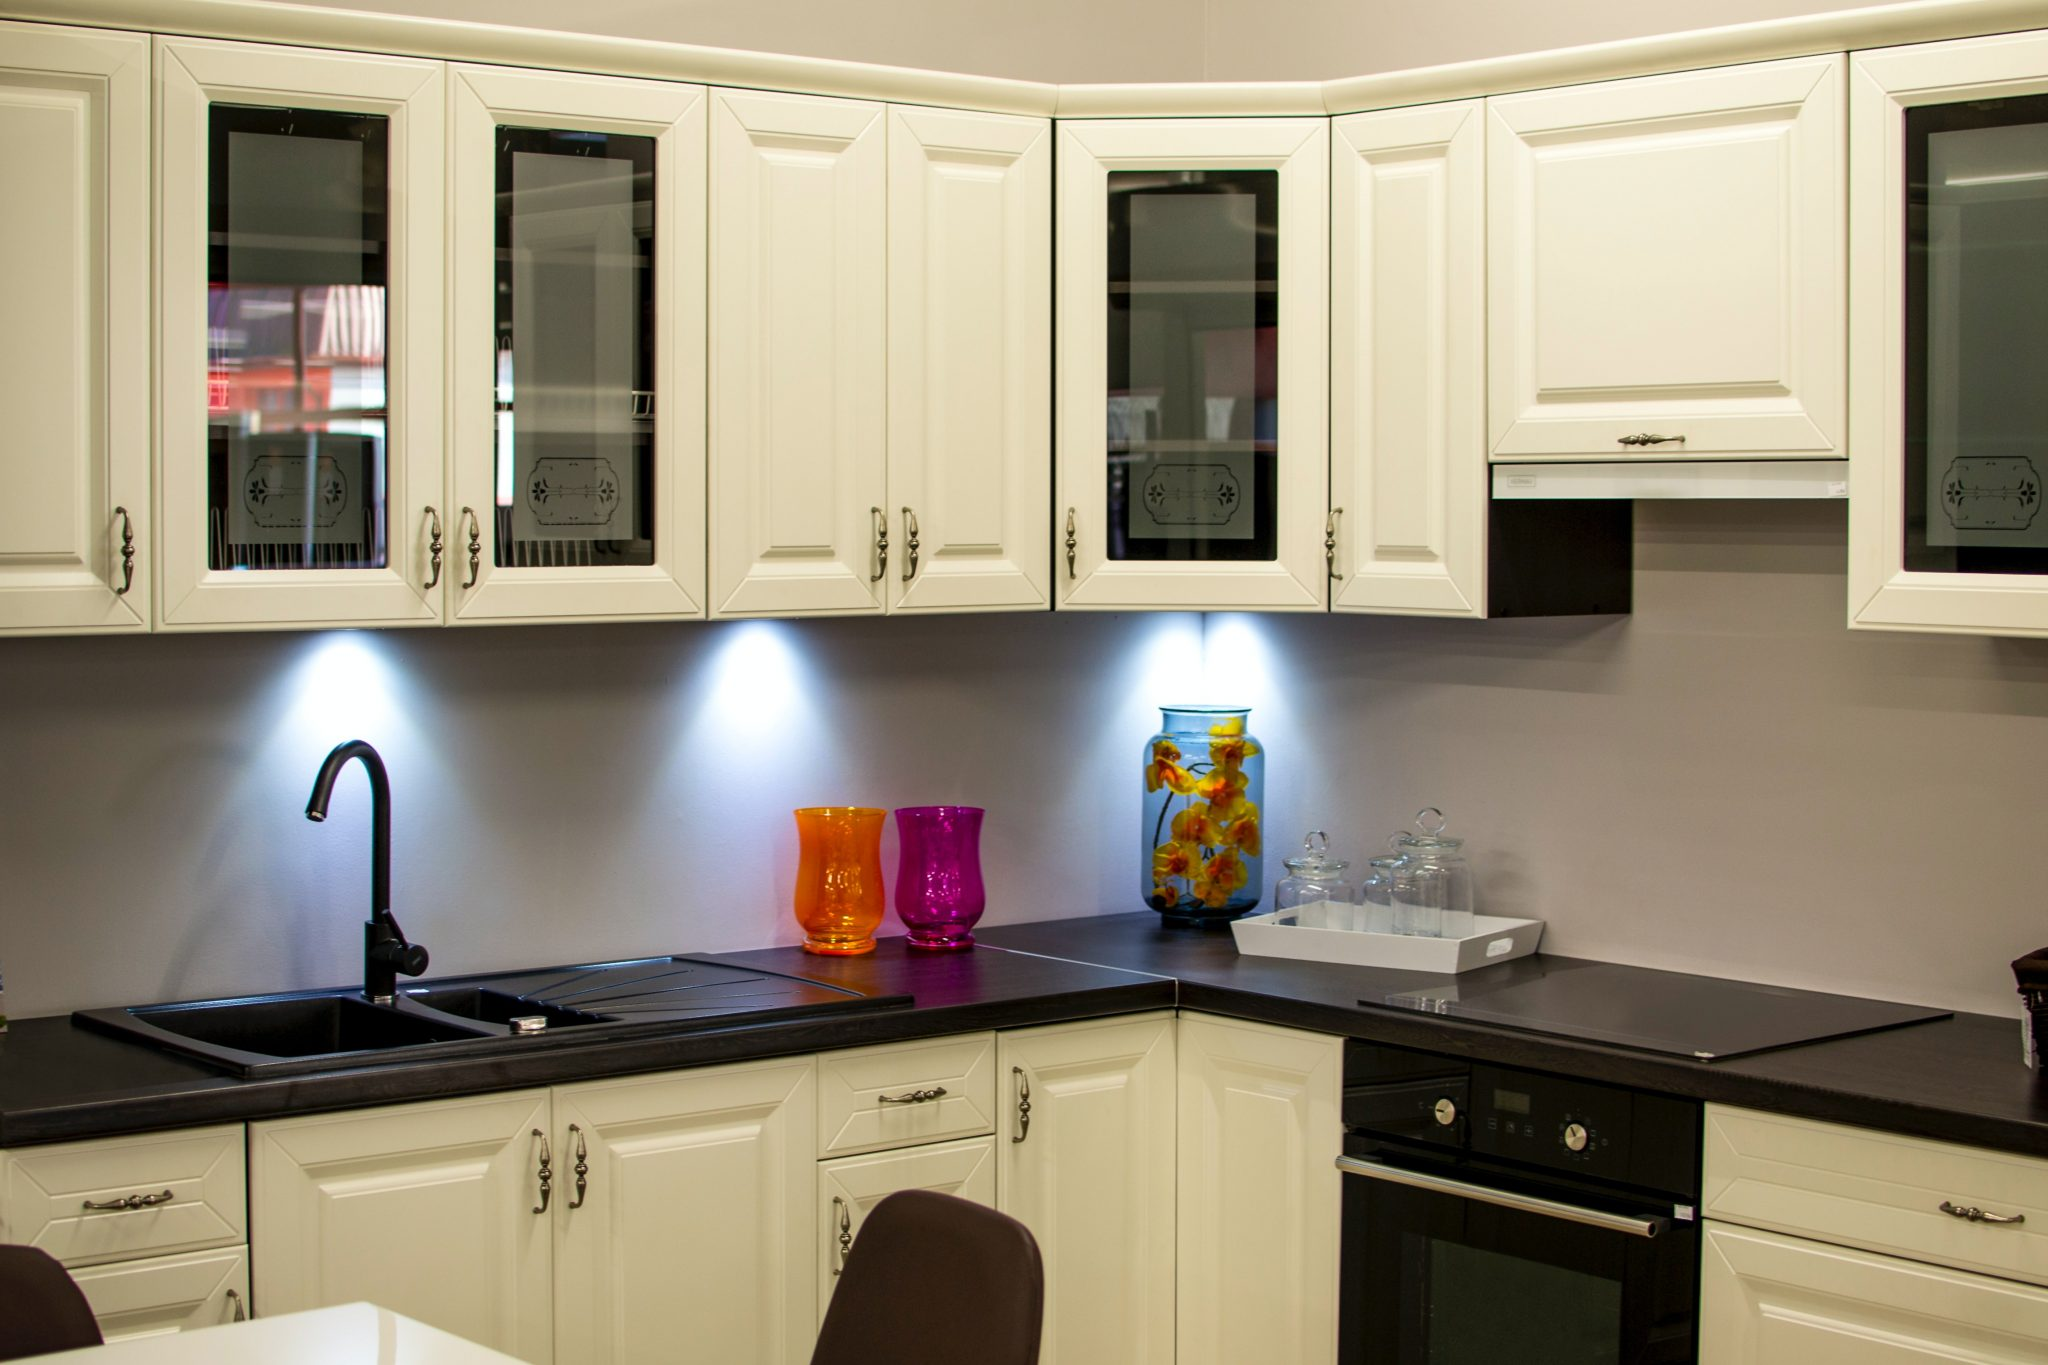 How to Improve the Lighting in Your Kitchen